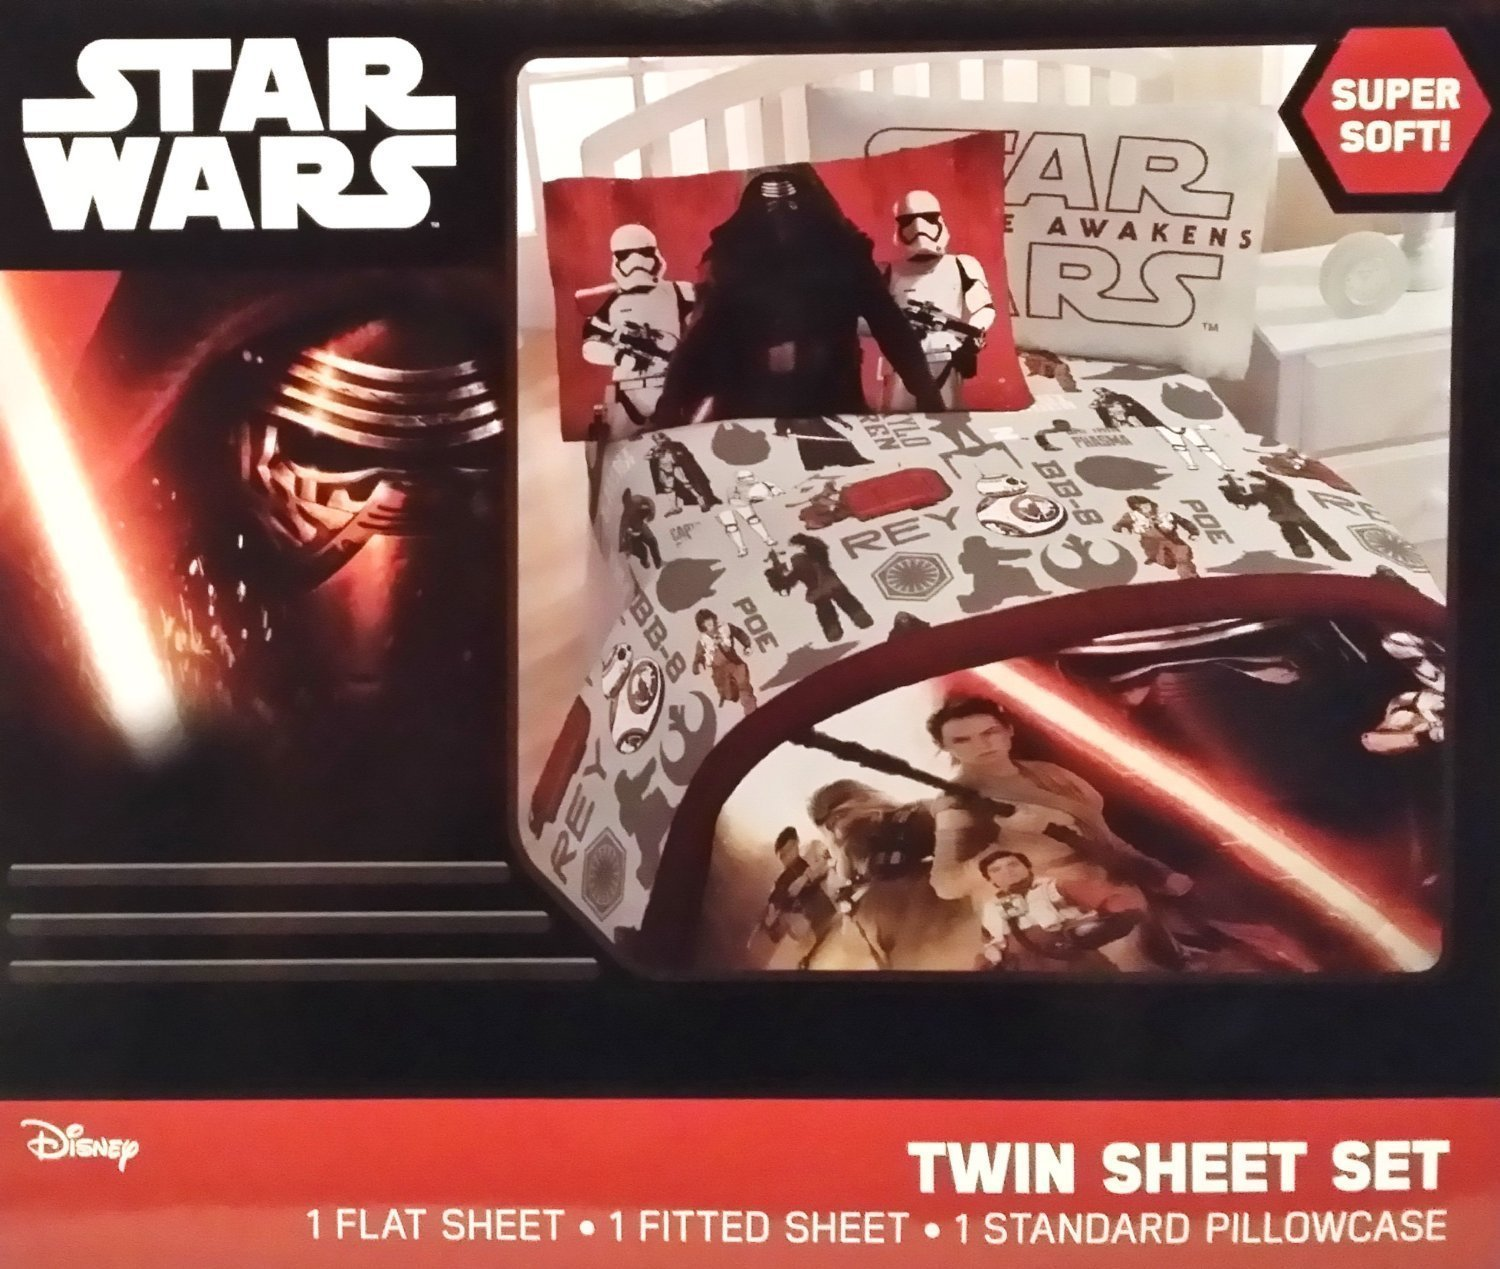 """Disney Star Wars Episode 7: The Force Awakens Twin Size Bed Sheets With Pillowcase Set. Includes: 1 Full Flat Sheet (66X96""""), 1 Full Fitted Sheet (39X75""""), 2 Pillowcases (20X30"""")."""